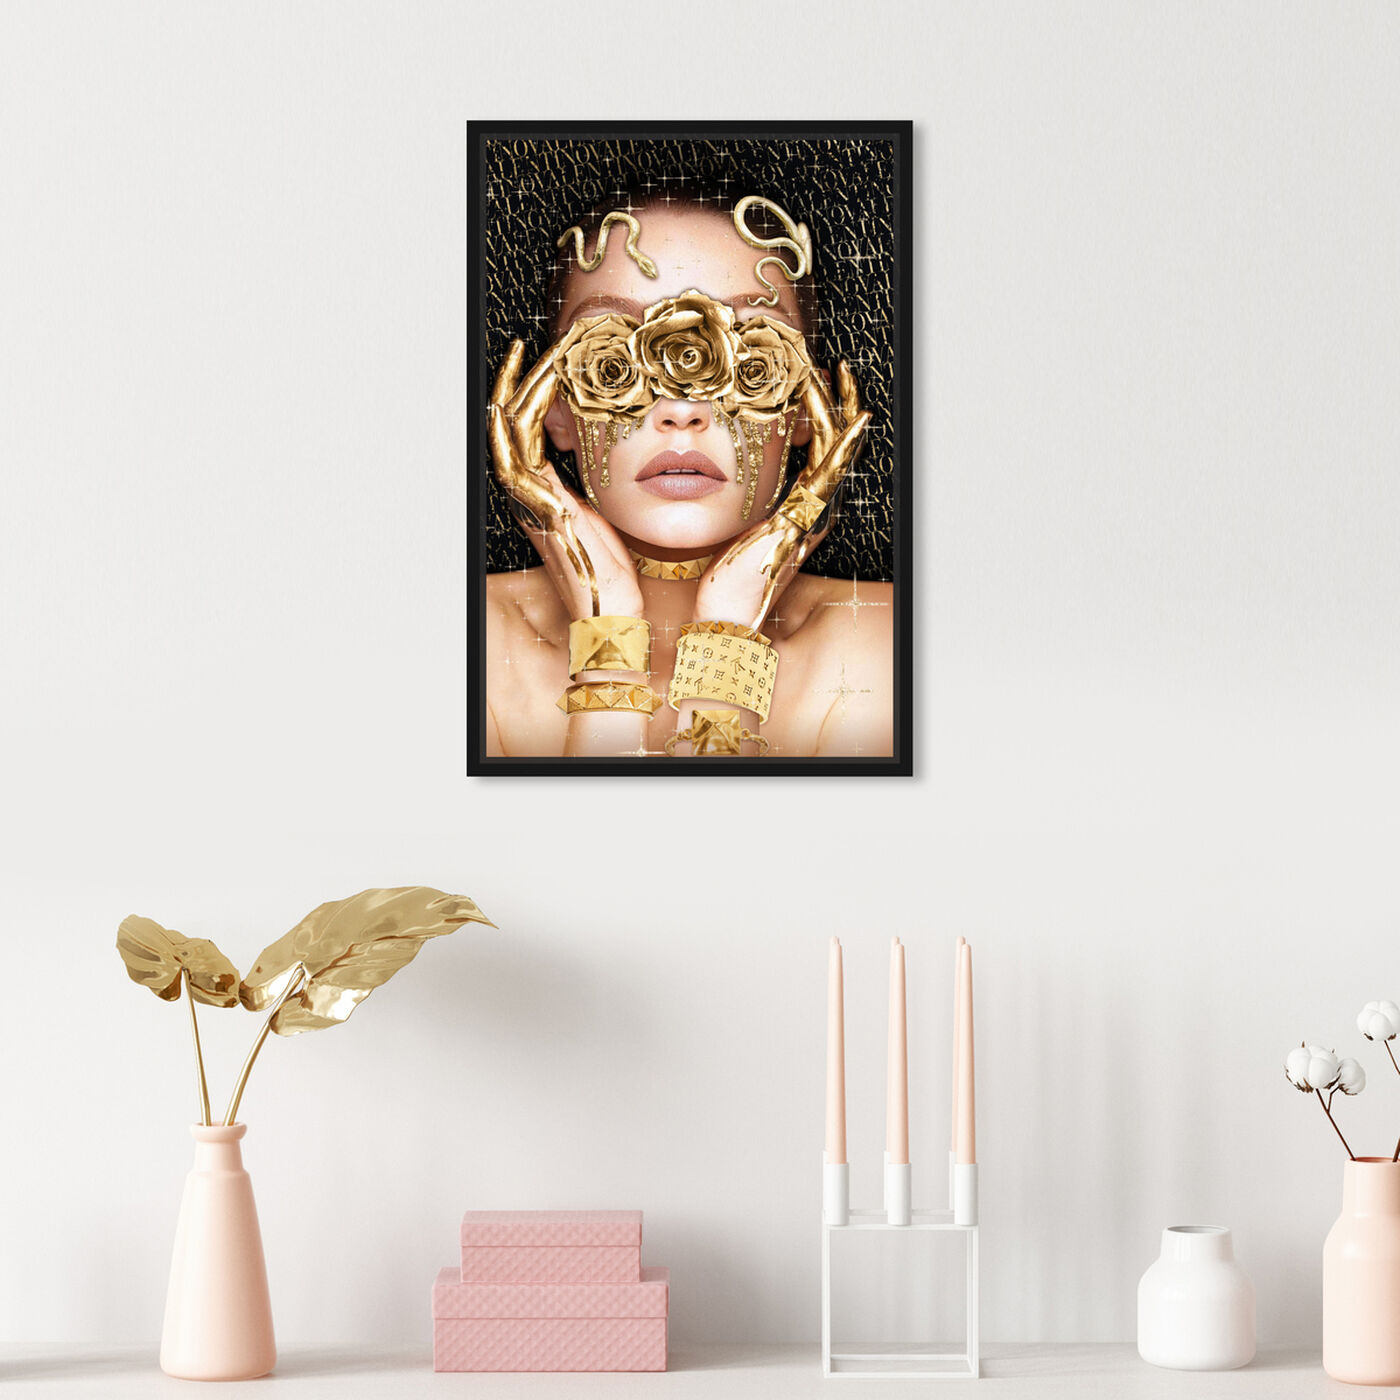 Hanging view of Golden Romantic featuring fashion and glam and portraits art.